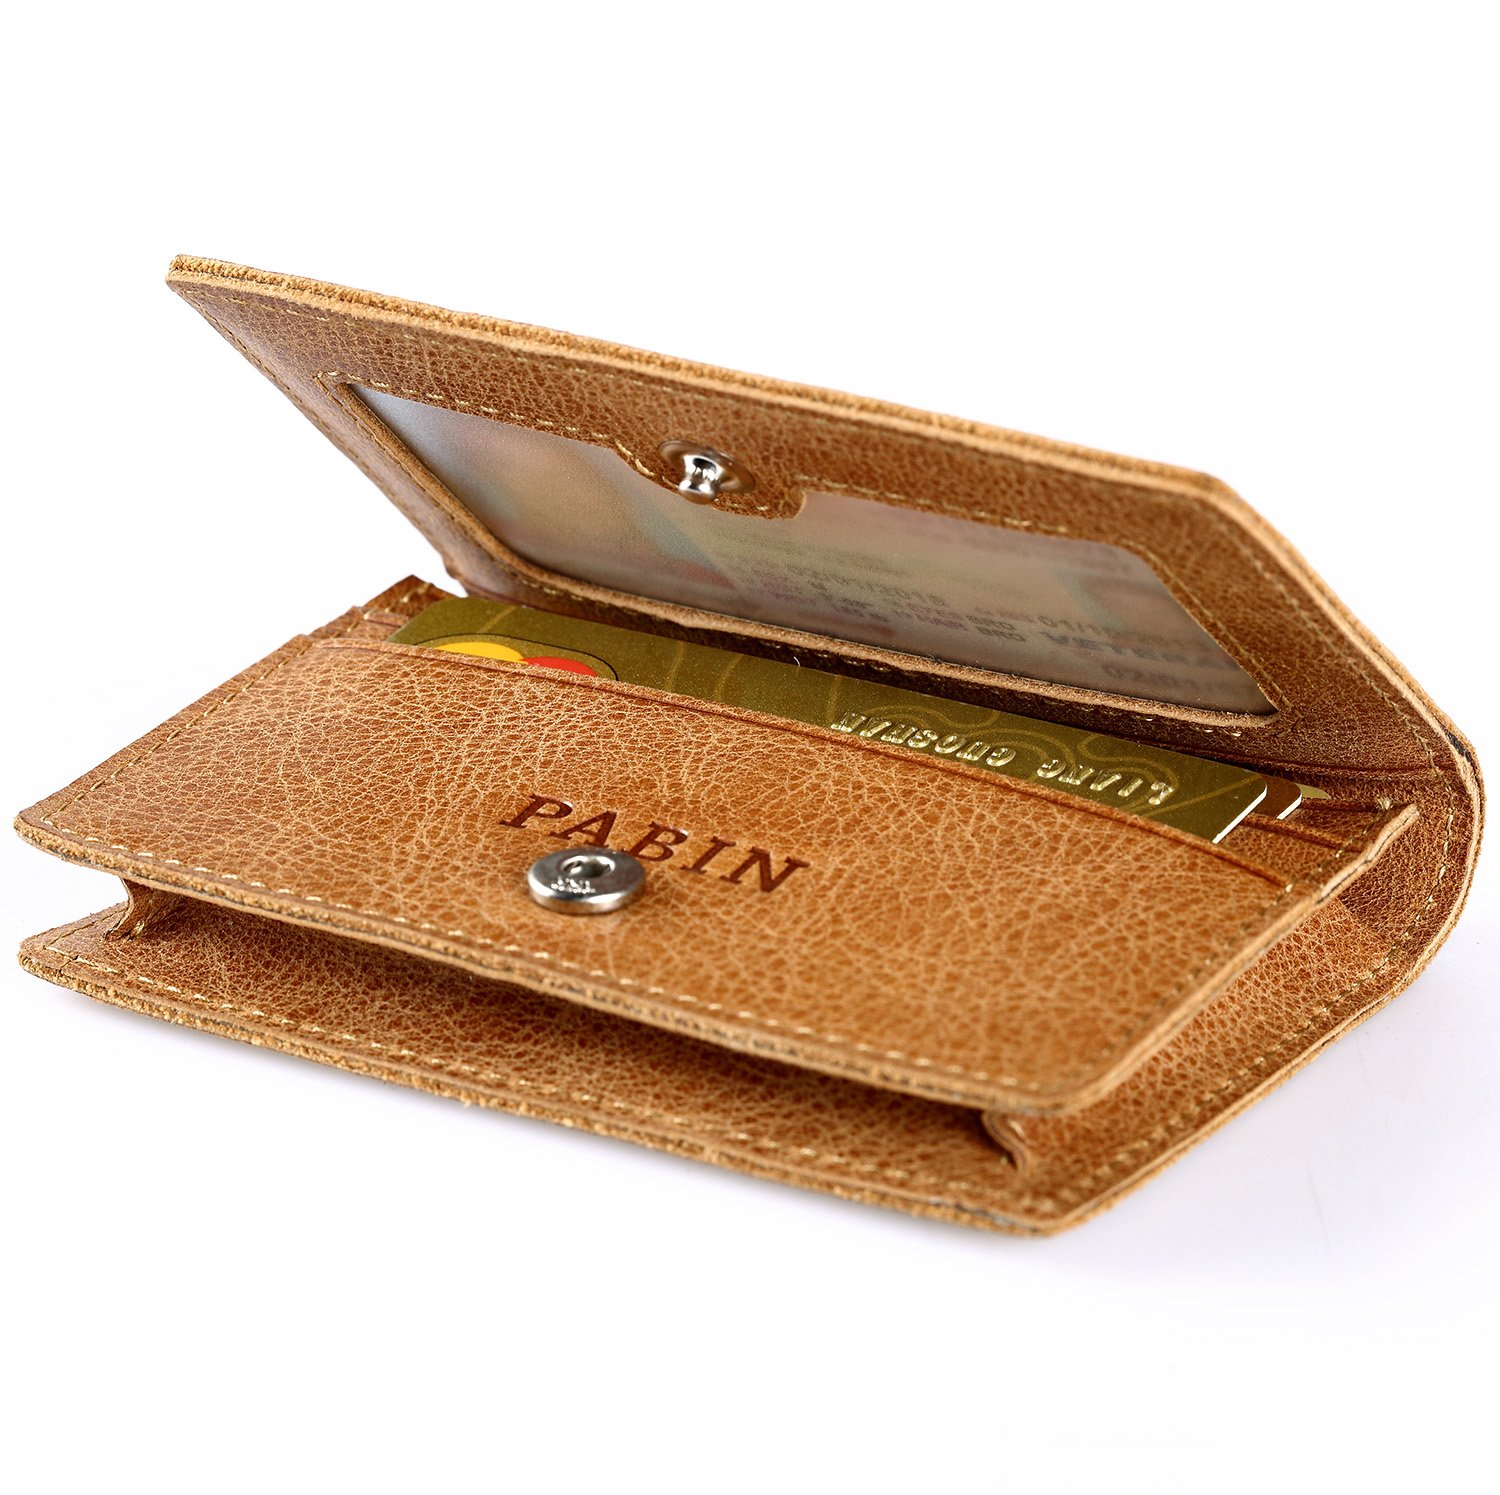 RFID Blocking Credit Card Holder Leather ID Case for Men Pabin (Vintage Brown) by Pabin (Image #2)